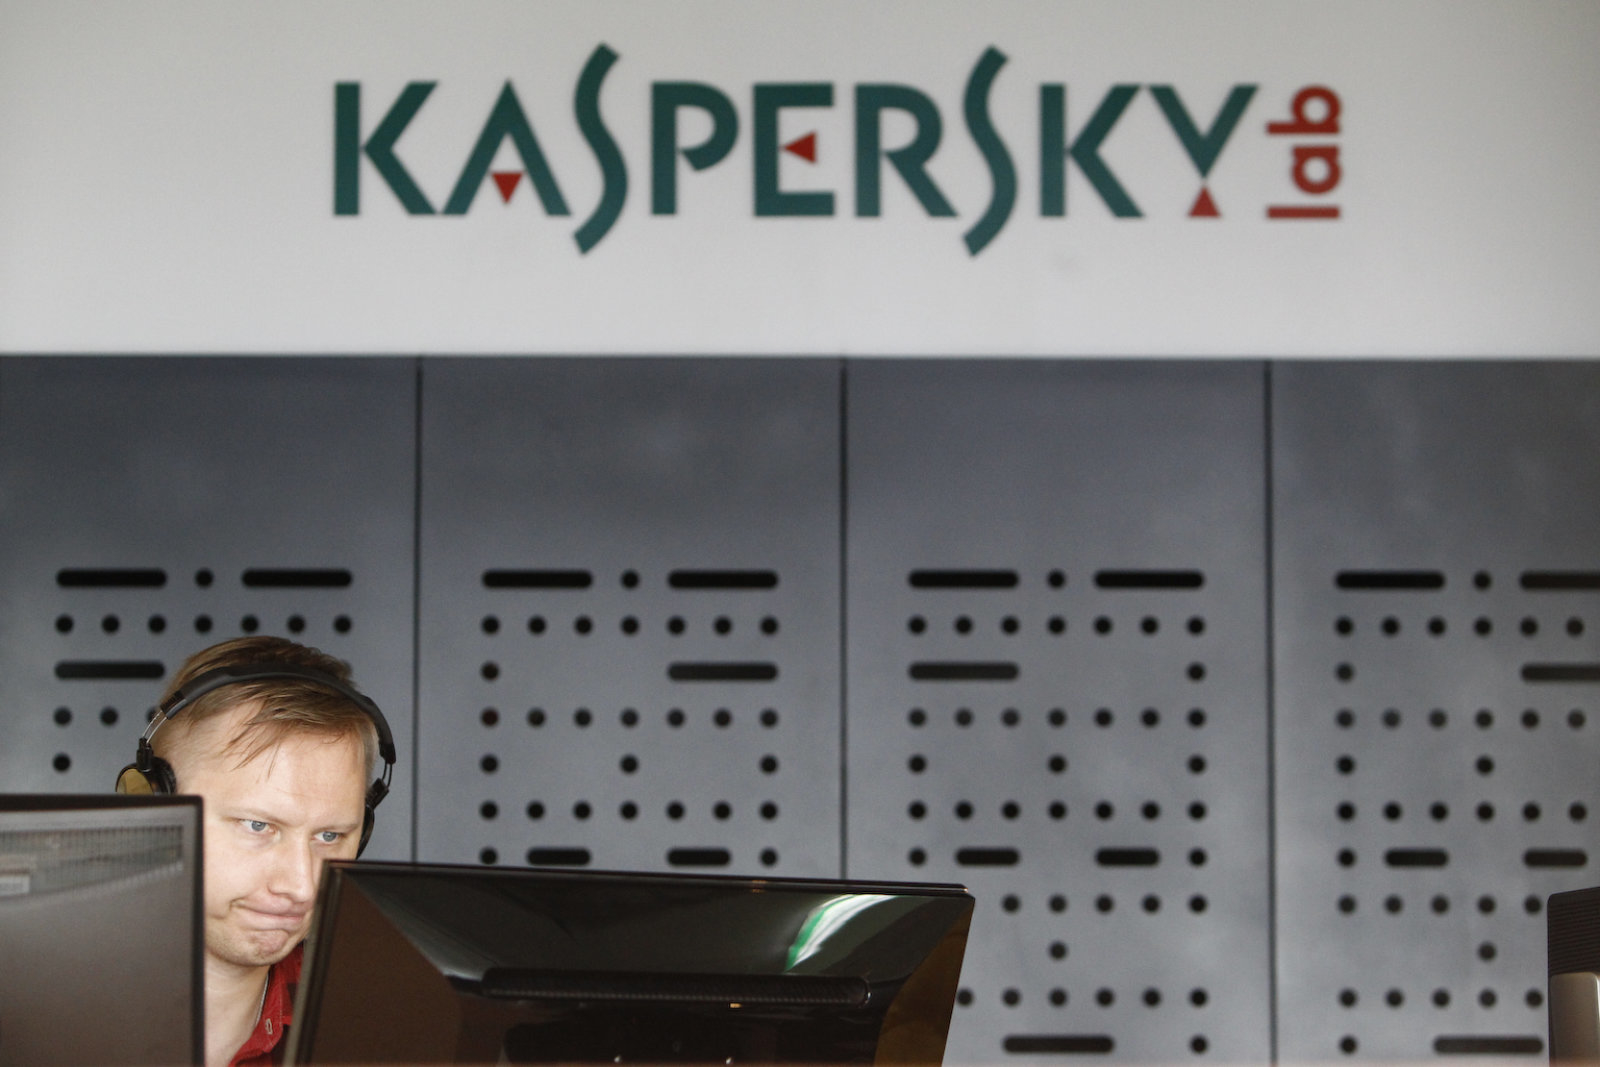 An employee works near screens in the virus lab at the headquarters of Russian cyber security company Kaspersky Labs in Moscow July 29, 2013. If you want to hack a phone, order a cyber attack on a competitor's website or buy a Trojan programme to steal banking information, look no further than the former Soviet Union. Picture taken July 29, 2013. To match Feature RUSSIA-CYBERCRIME/  REUTERS/Sergei Karpukhin (RUSSIA - Tags: SCIENCE TECHNOLOGY CRIME LAW BUSINESS)